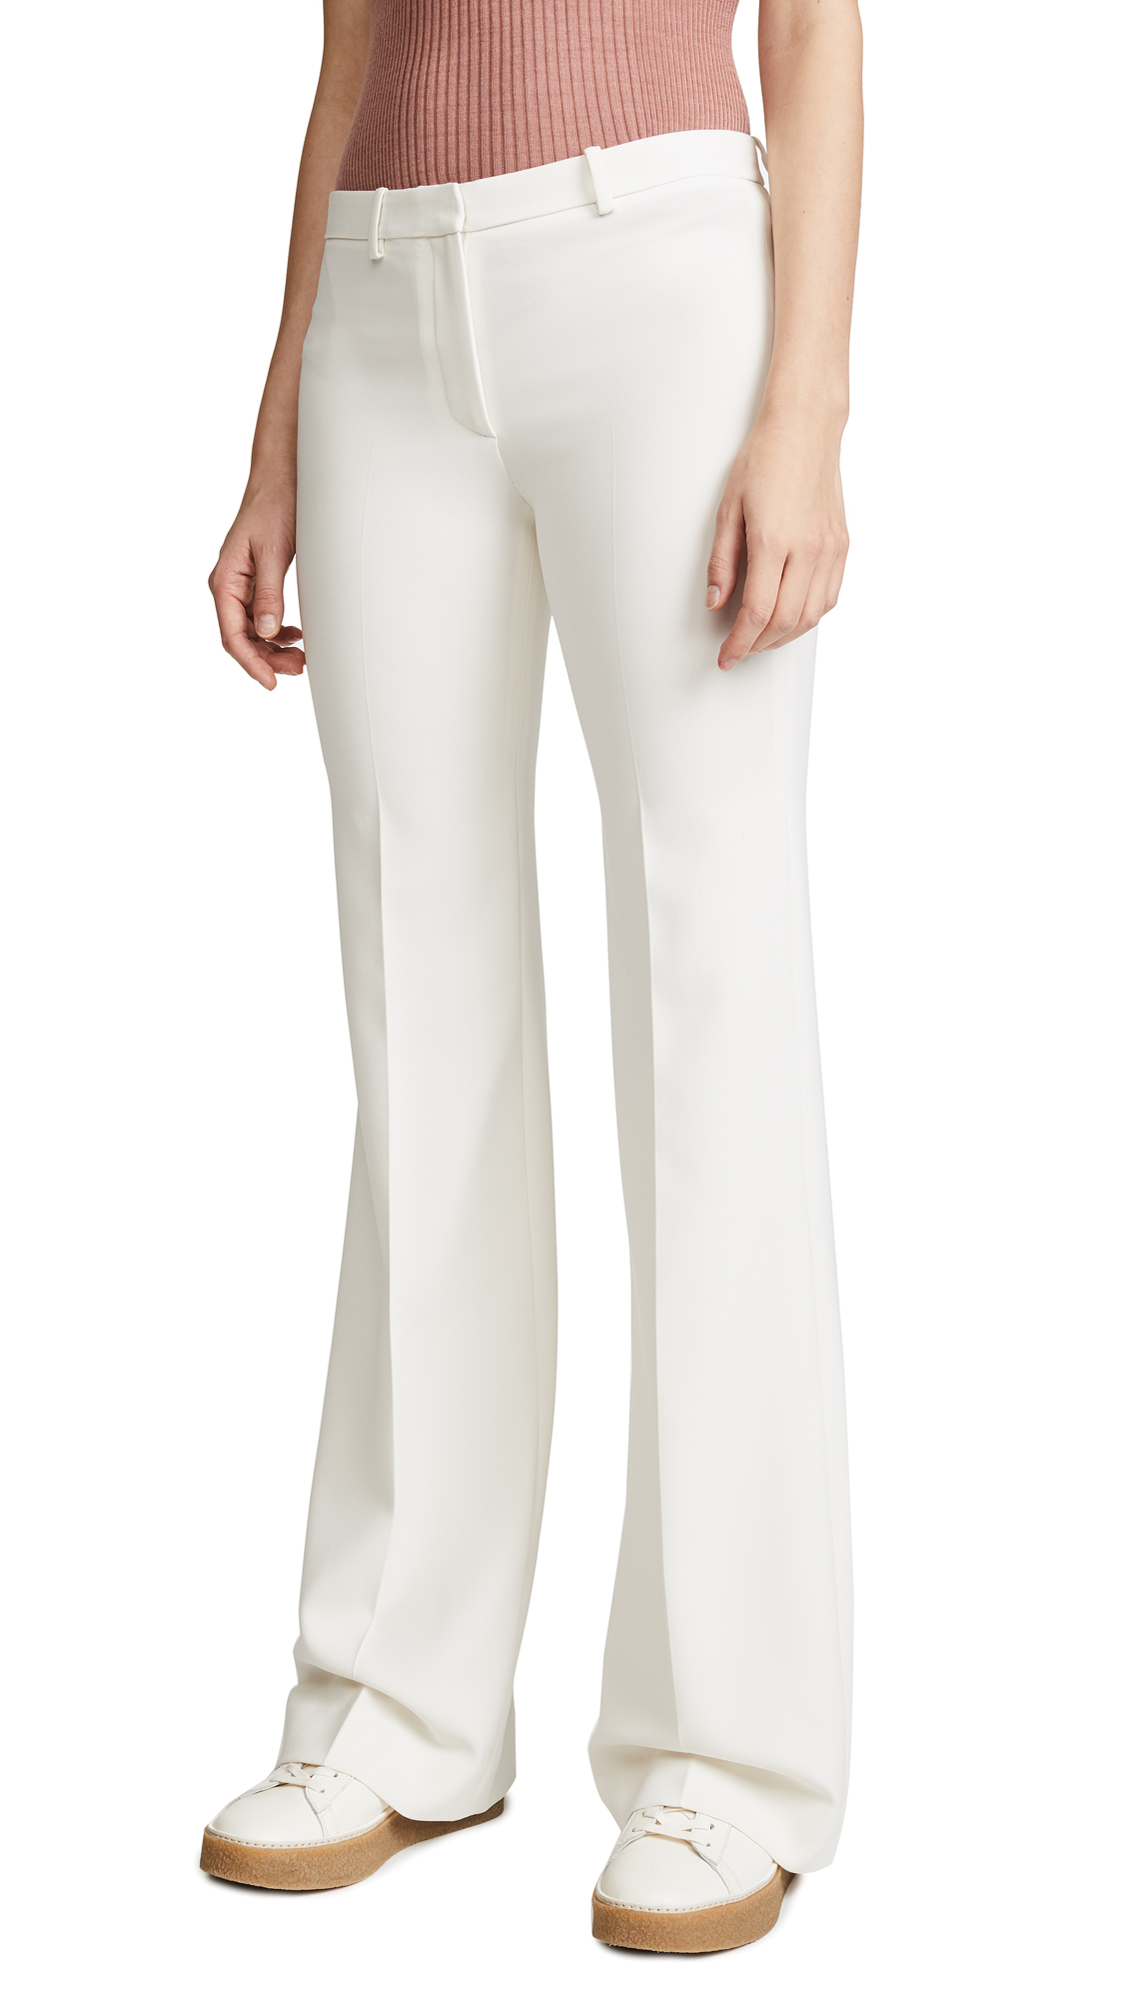 Theory Demitria 2 Pants - Warm Ivory